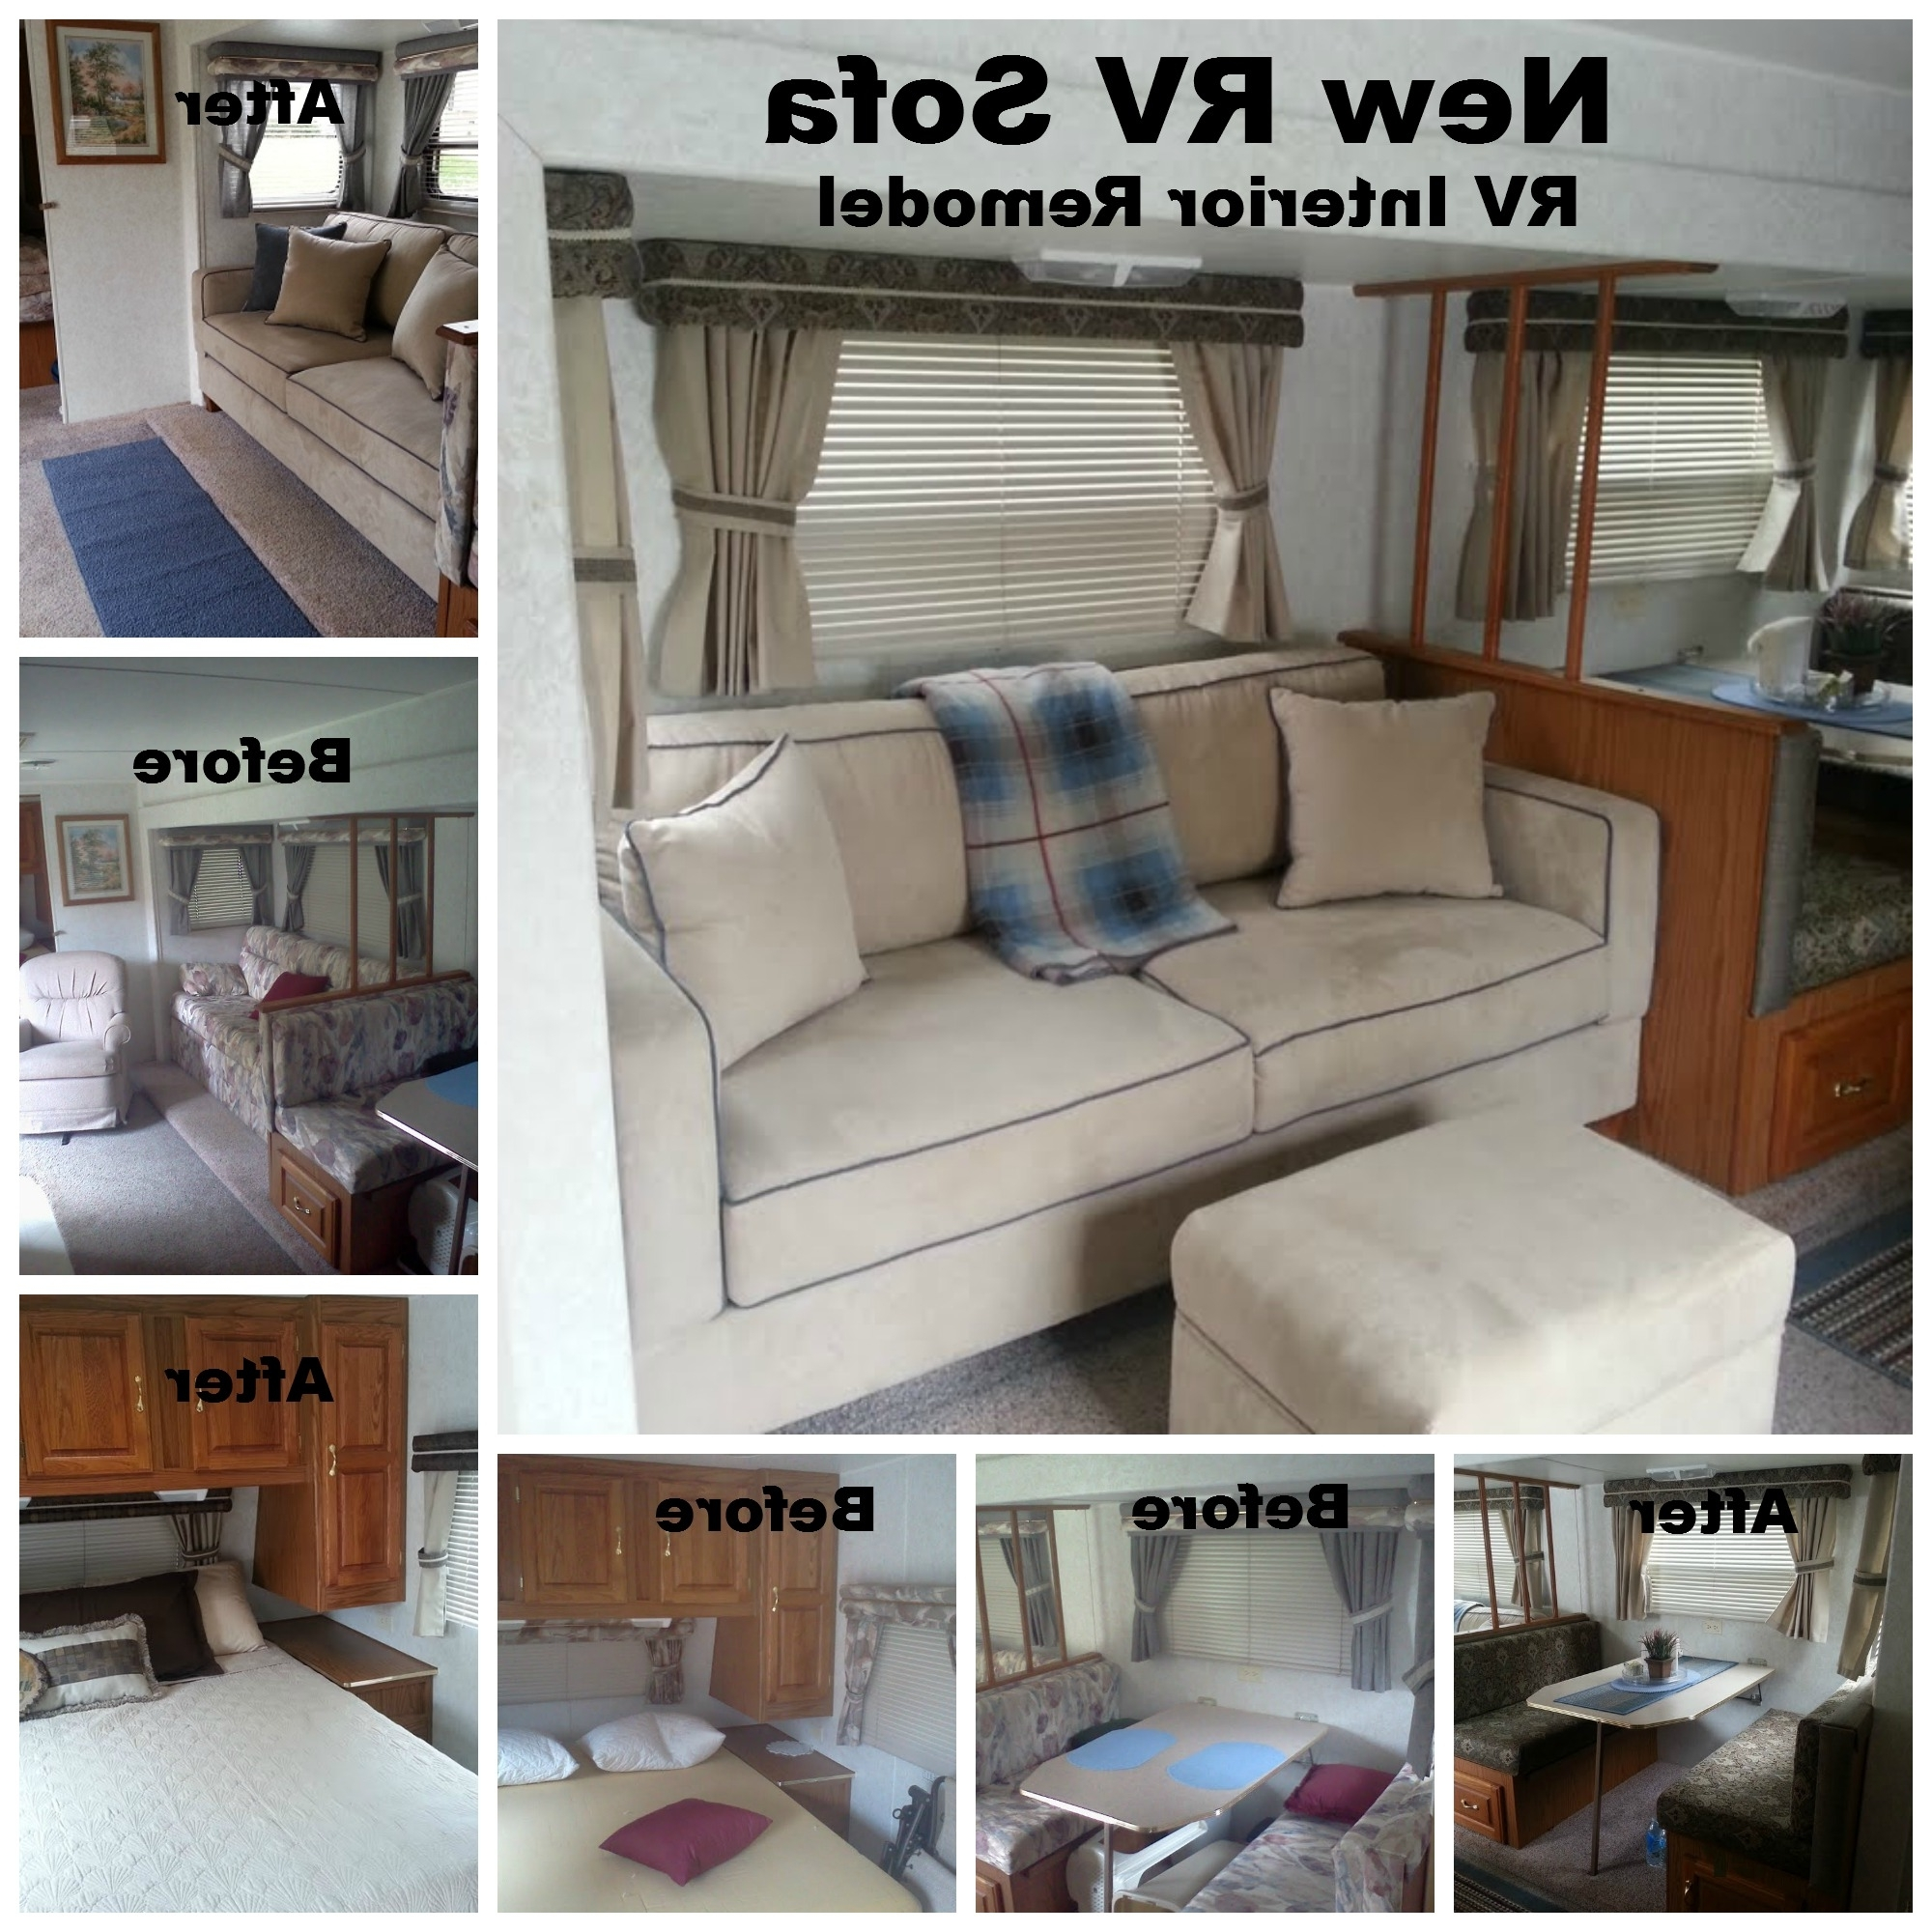 "Recent Sectional Sofas For Campers For My Rv (1999 Jayco) Remodel With My New Sofa 72"" X 34"" Sofa Fit (View 10 of 20)"